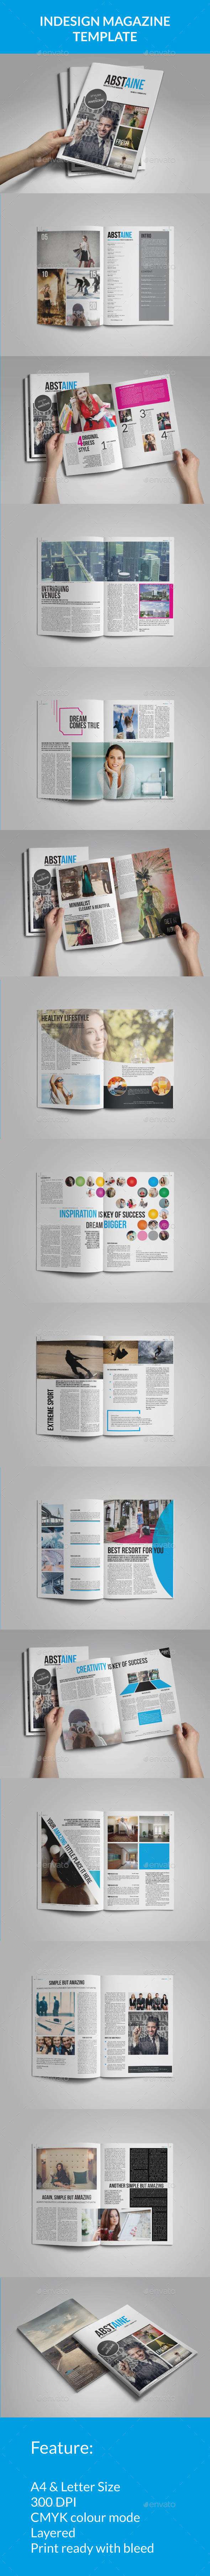 Absolute Stylish Magazine Template - Magazines Print Templates